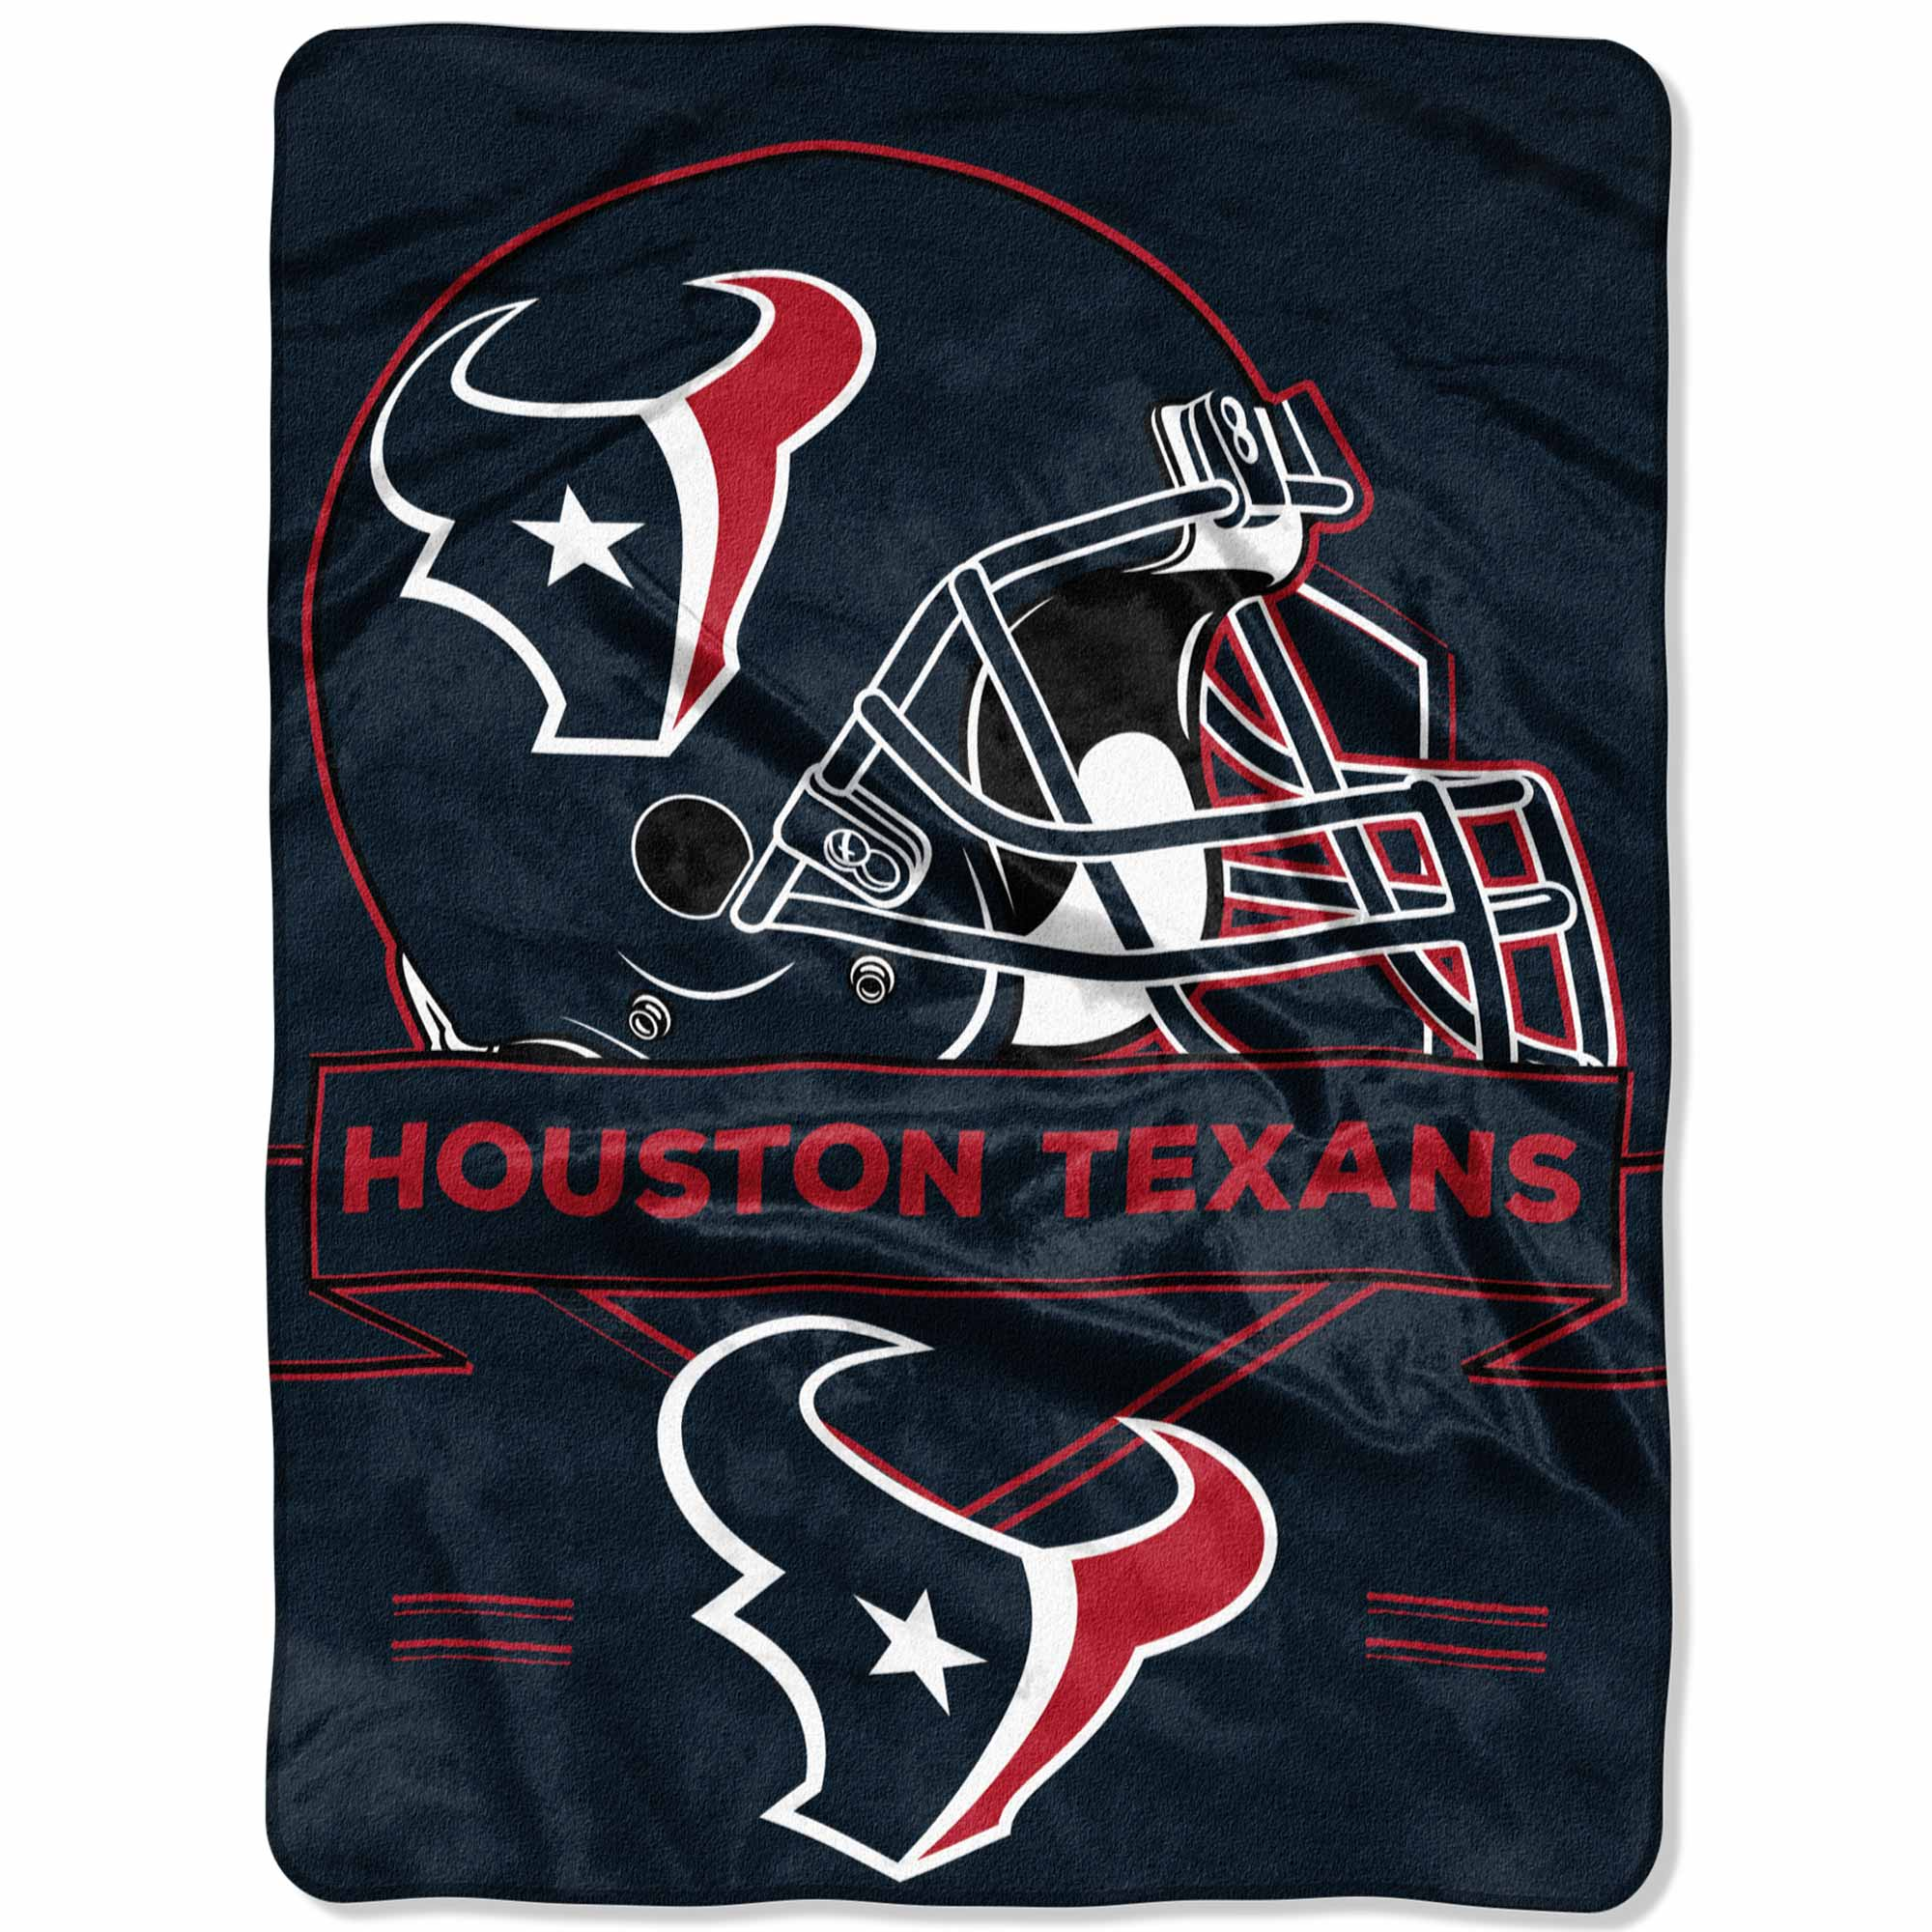 "Houston Texans The Northwest Company 60"" x 80"" Prestige Raschel Blanket - No Size"